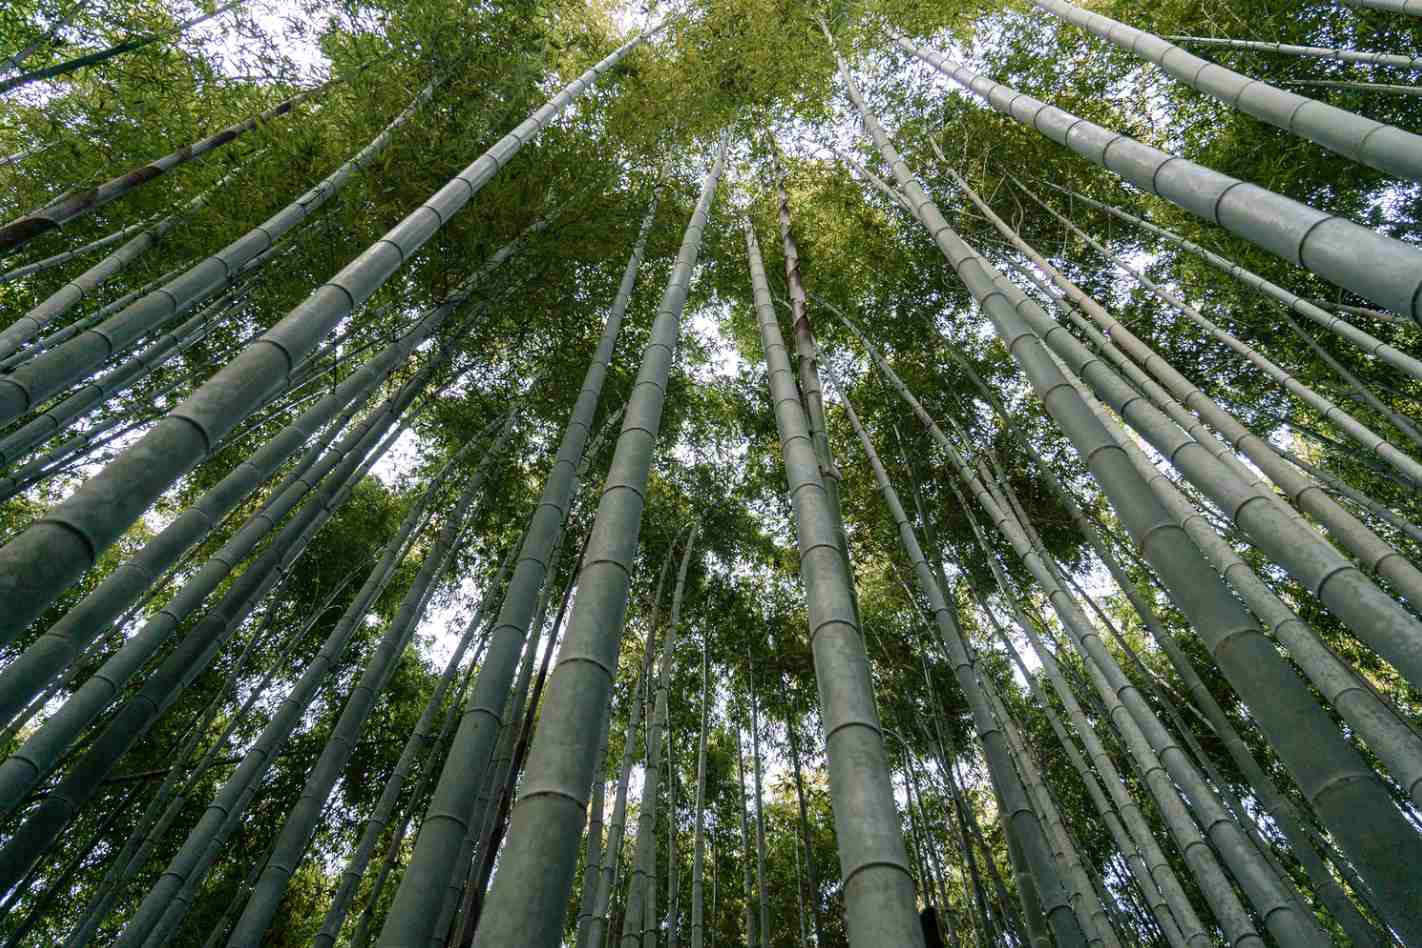 Bamboo for ecology